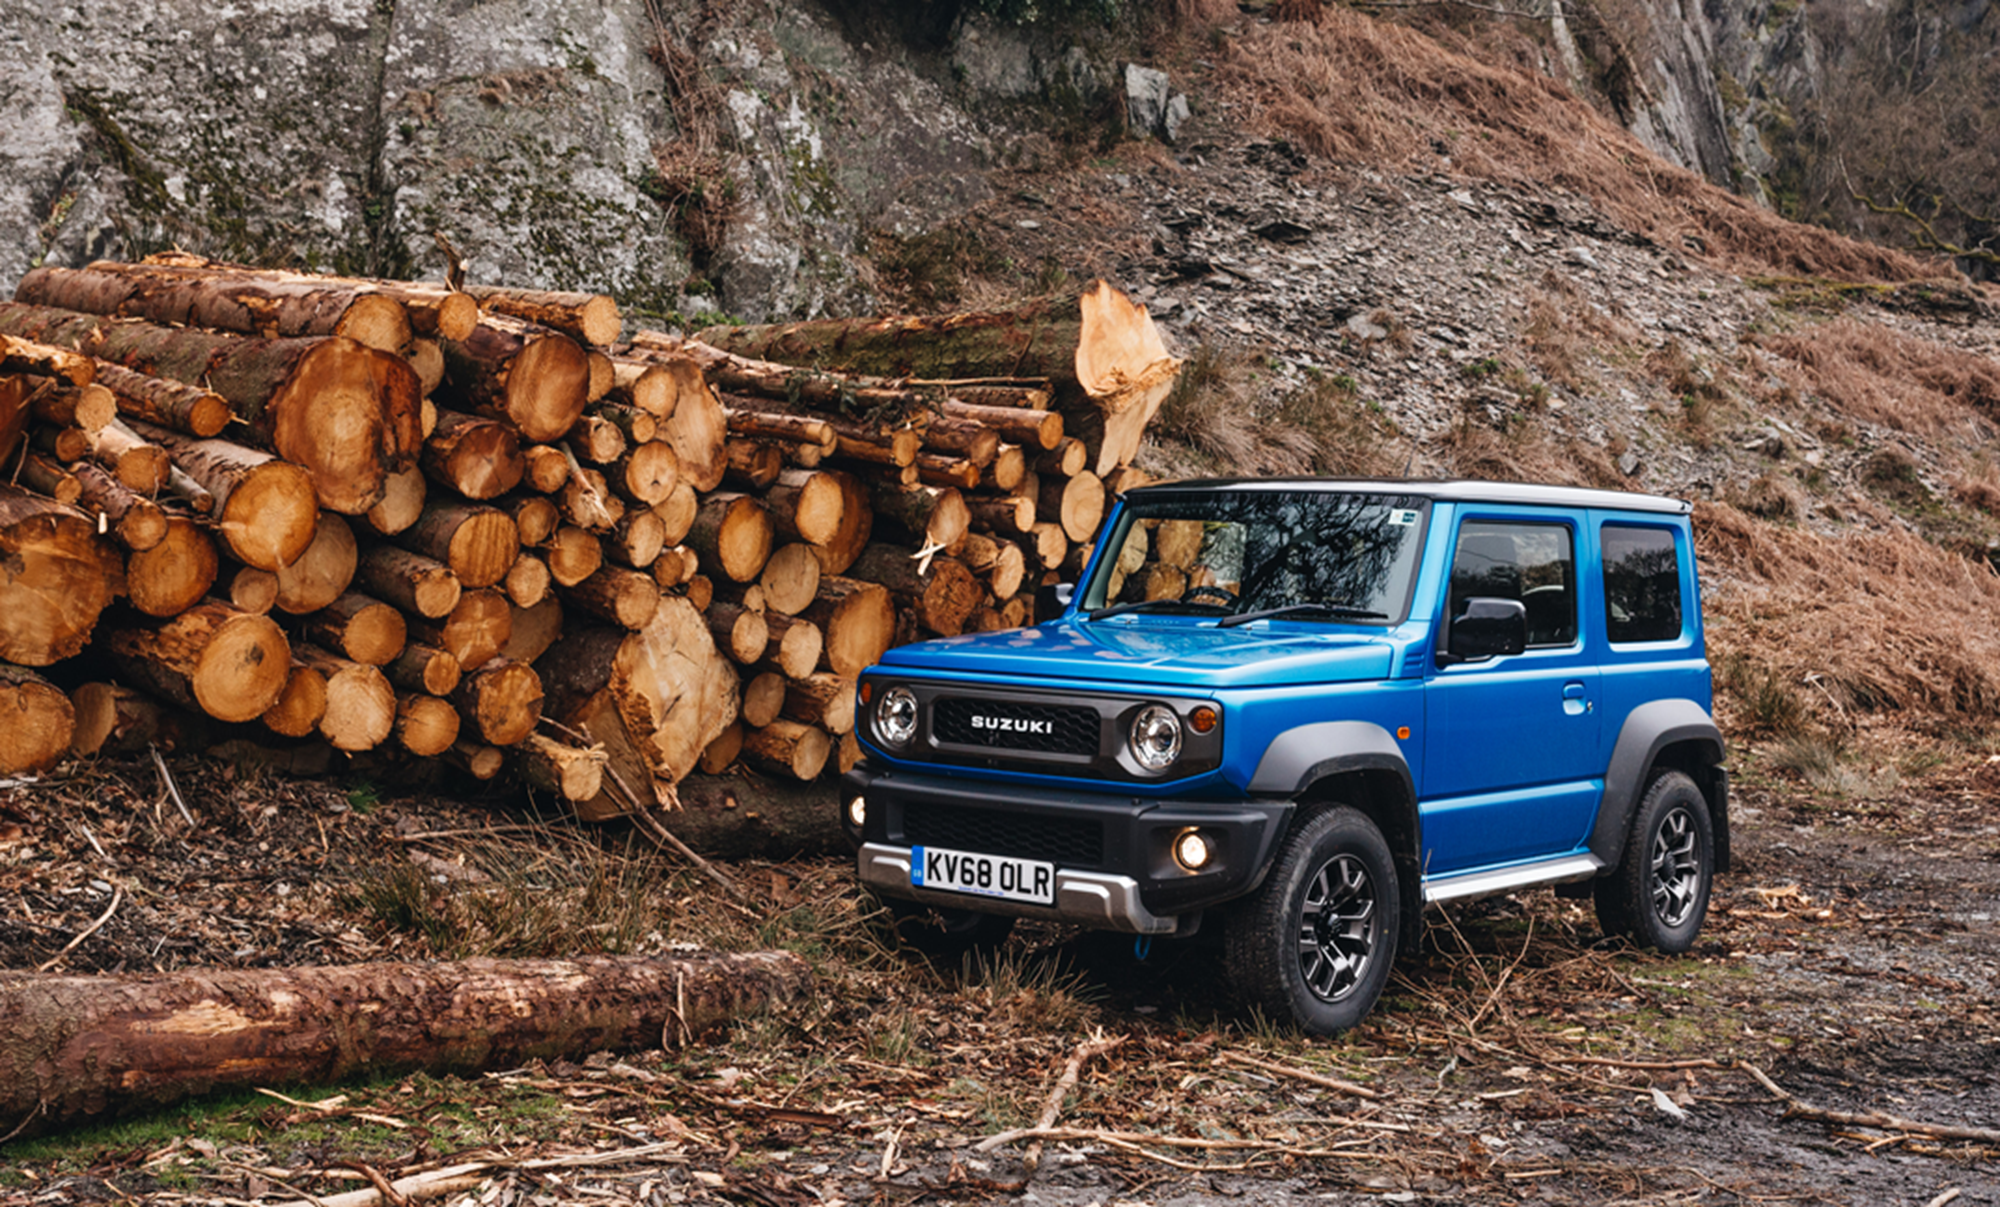 The New Suzuki Jimny | Small SUV Off-Road Car | Suzuki Cars UK